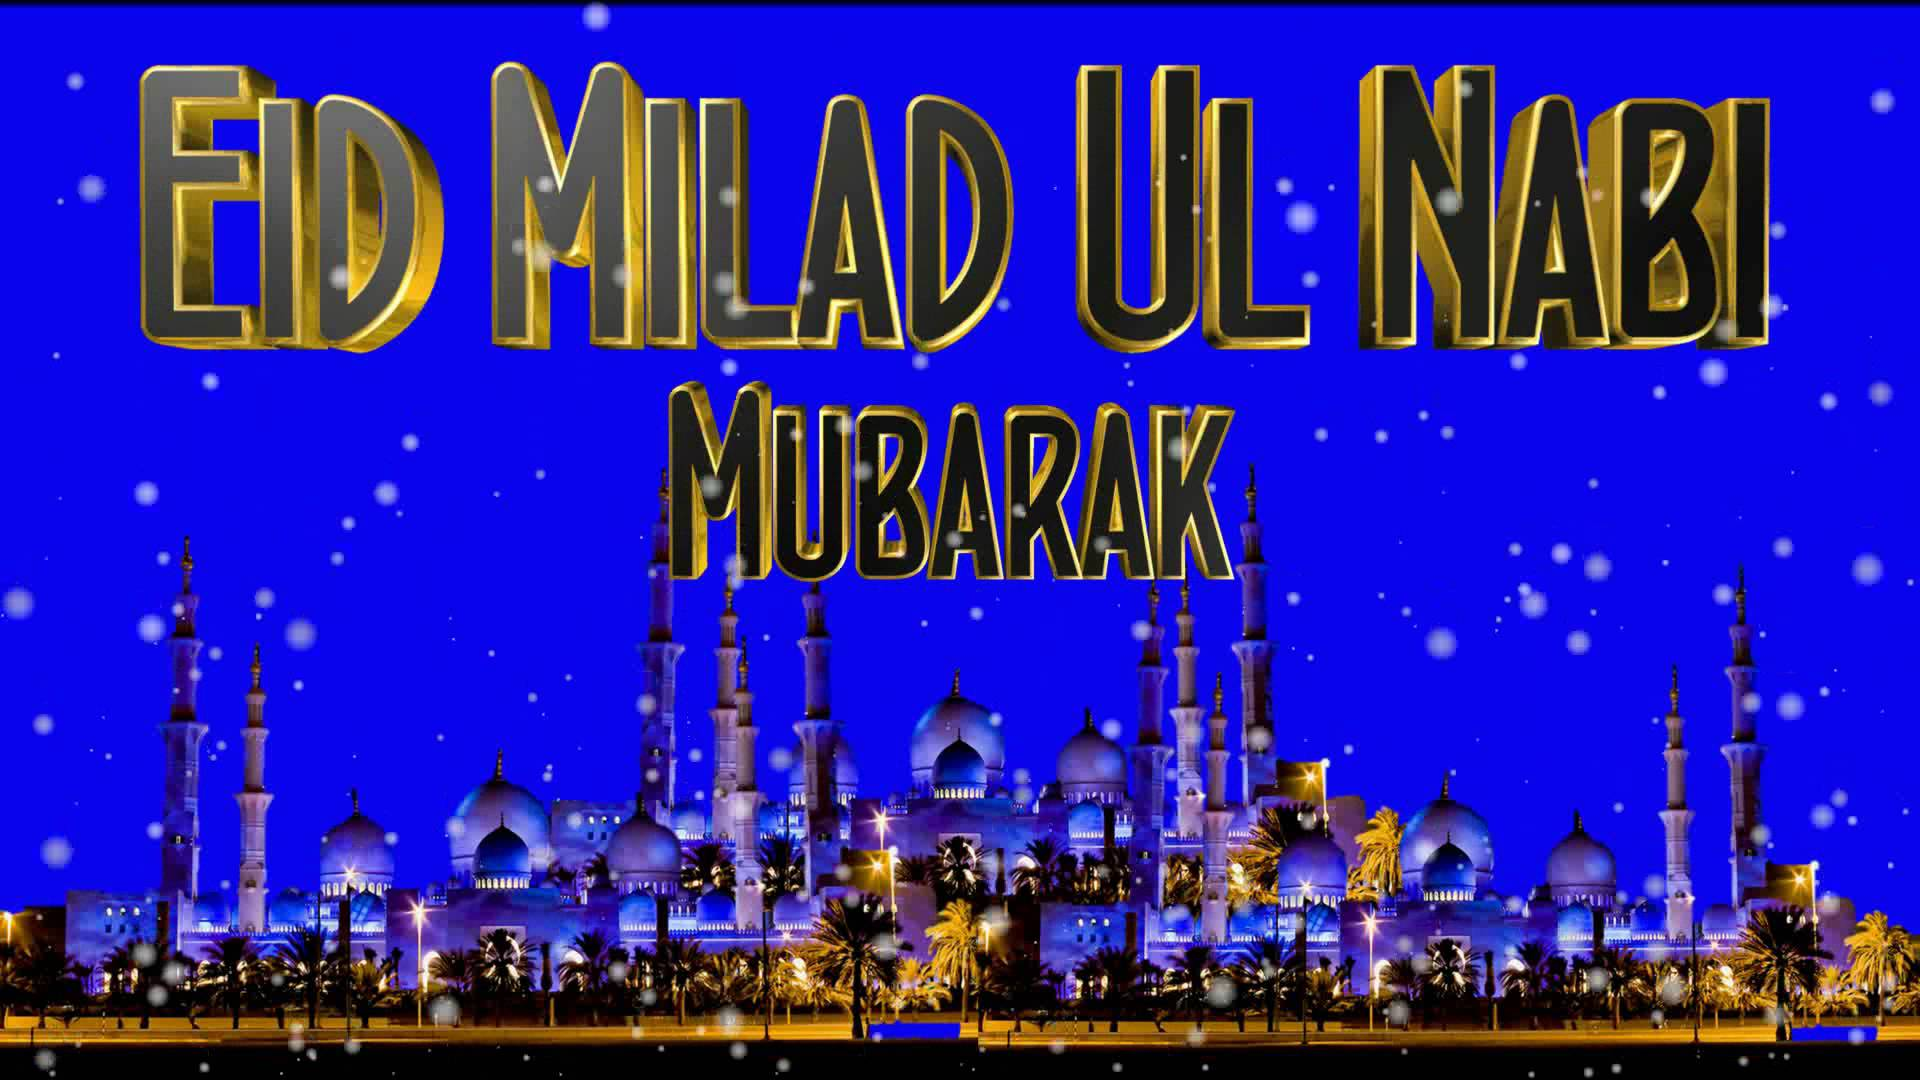 Wallpaper download eid milad un nabi - Eid Milad Un Nabi Mubarak Pic